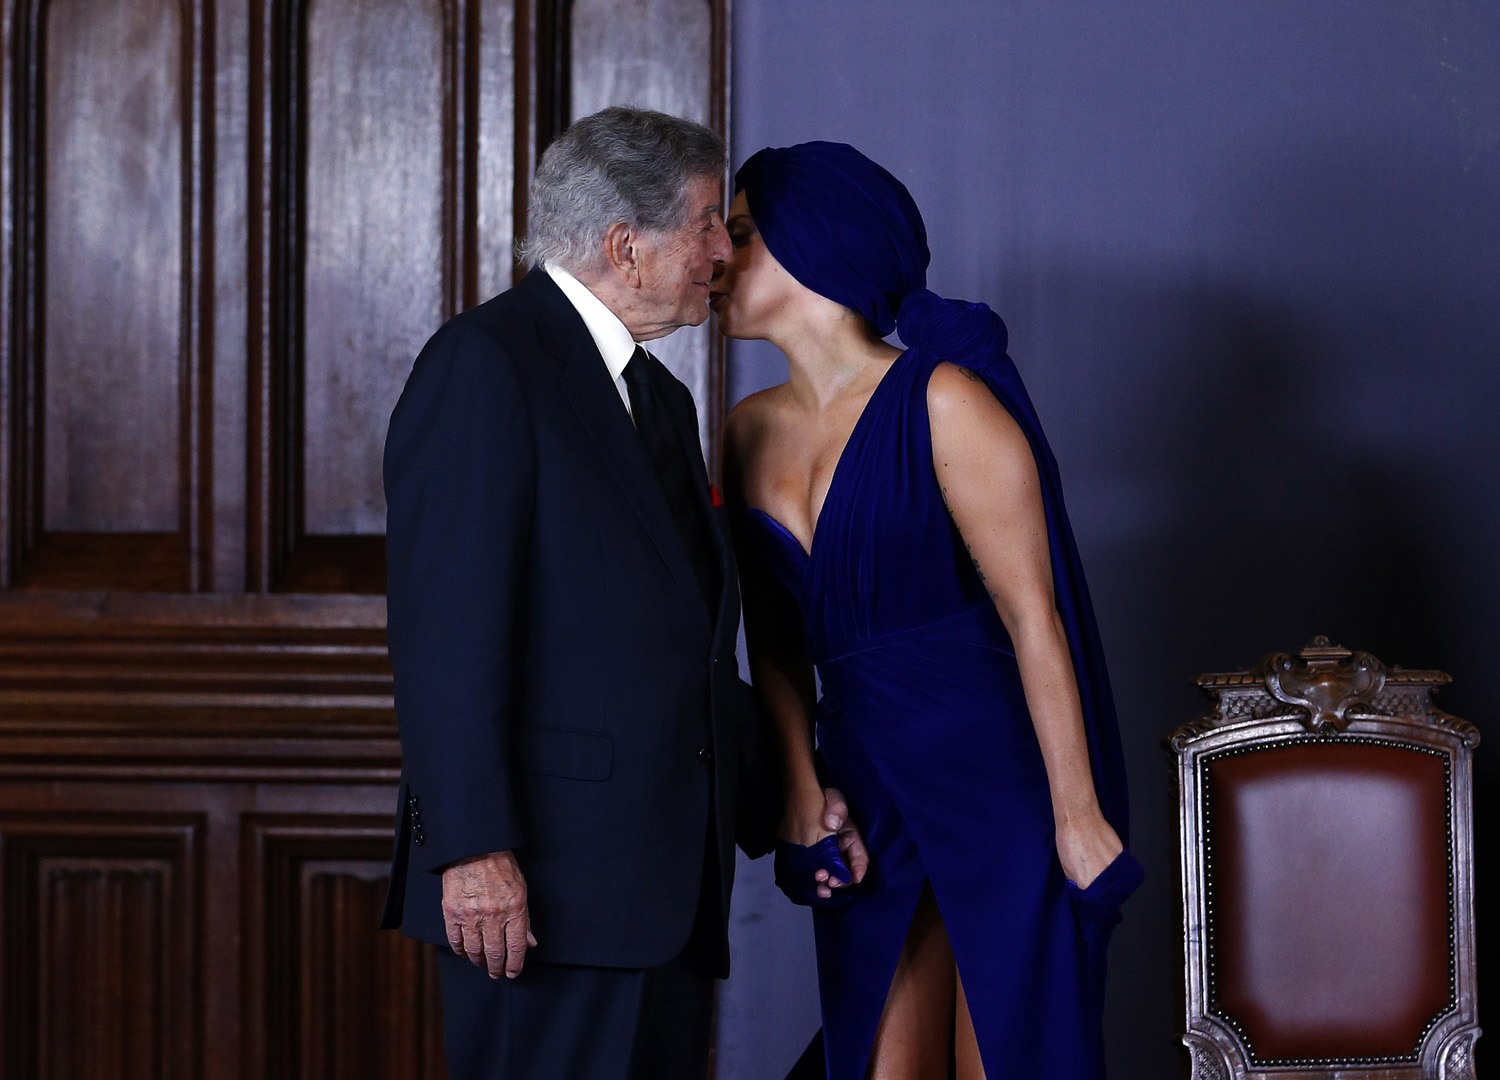 U.S. singers Lady Gaga and Tony Bennett arrive at a news conference, ahead of their concert in Brussels on Sept. 22, 2014.